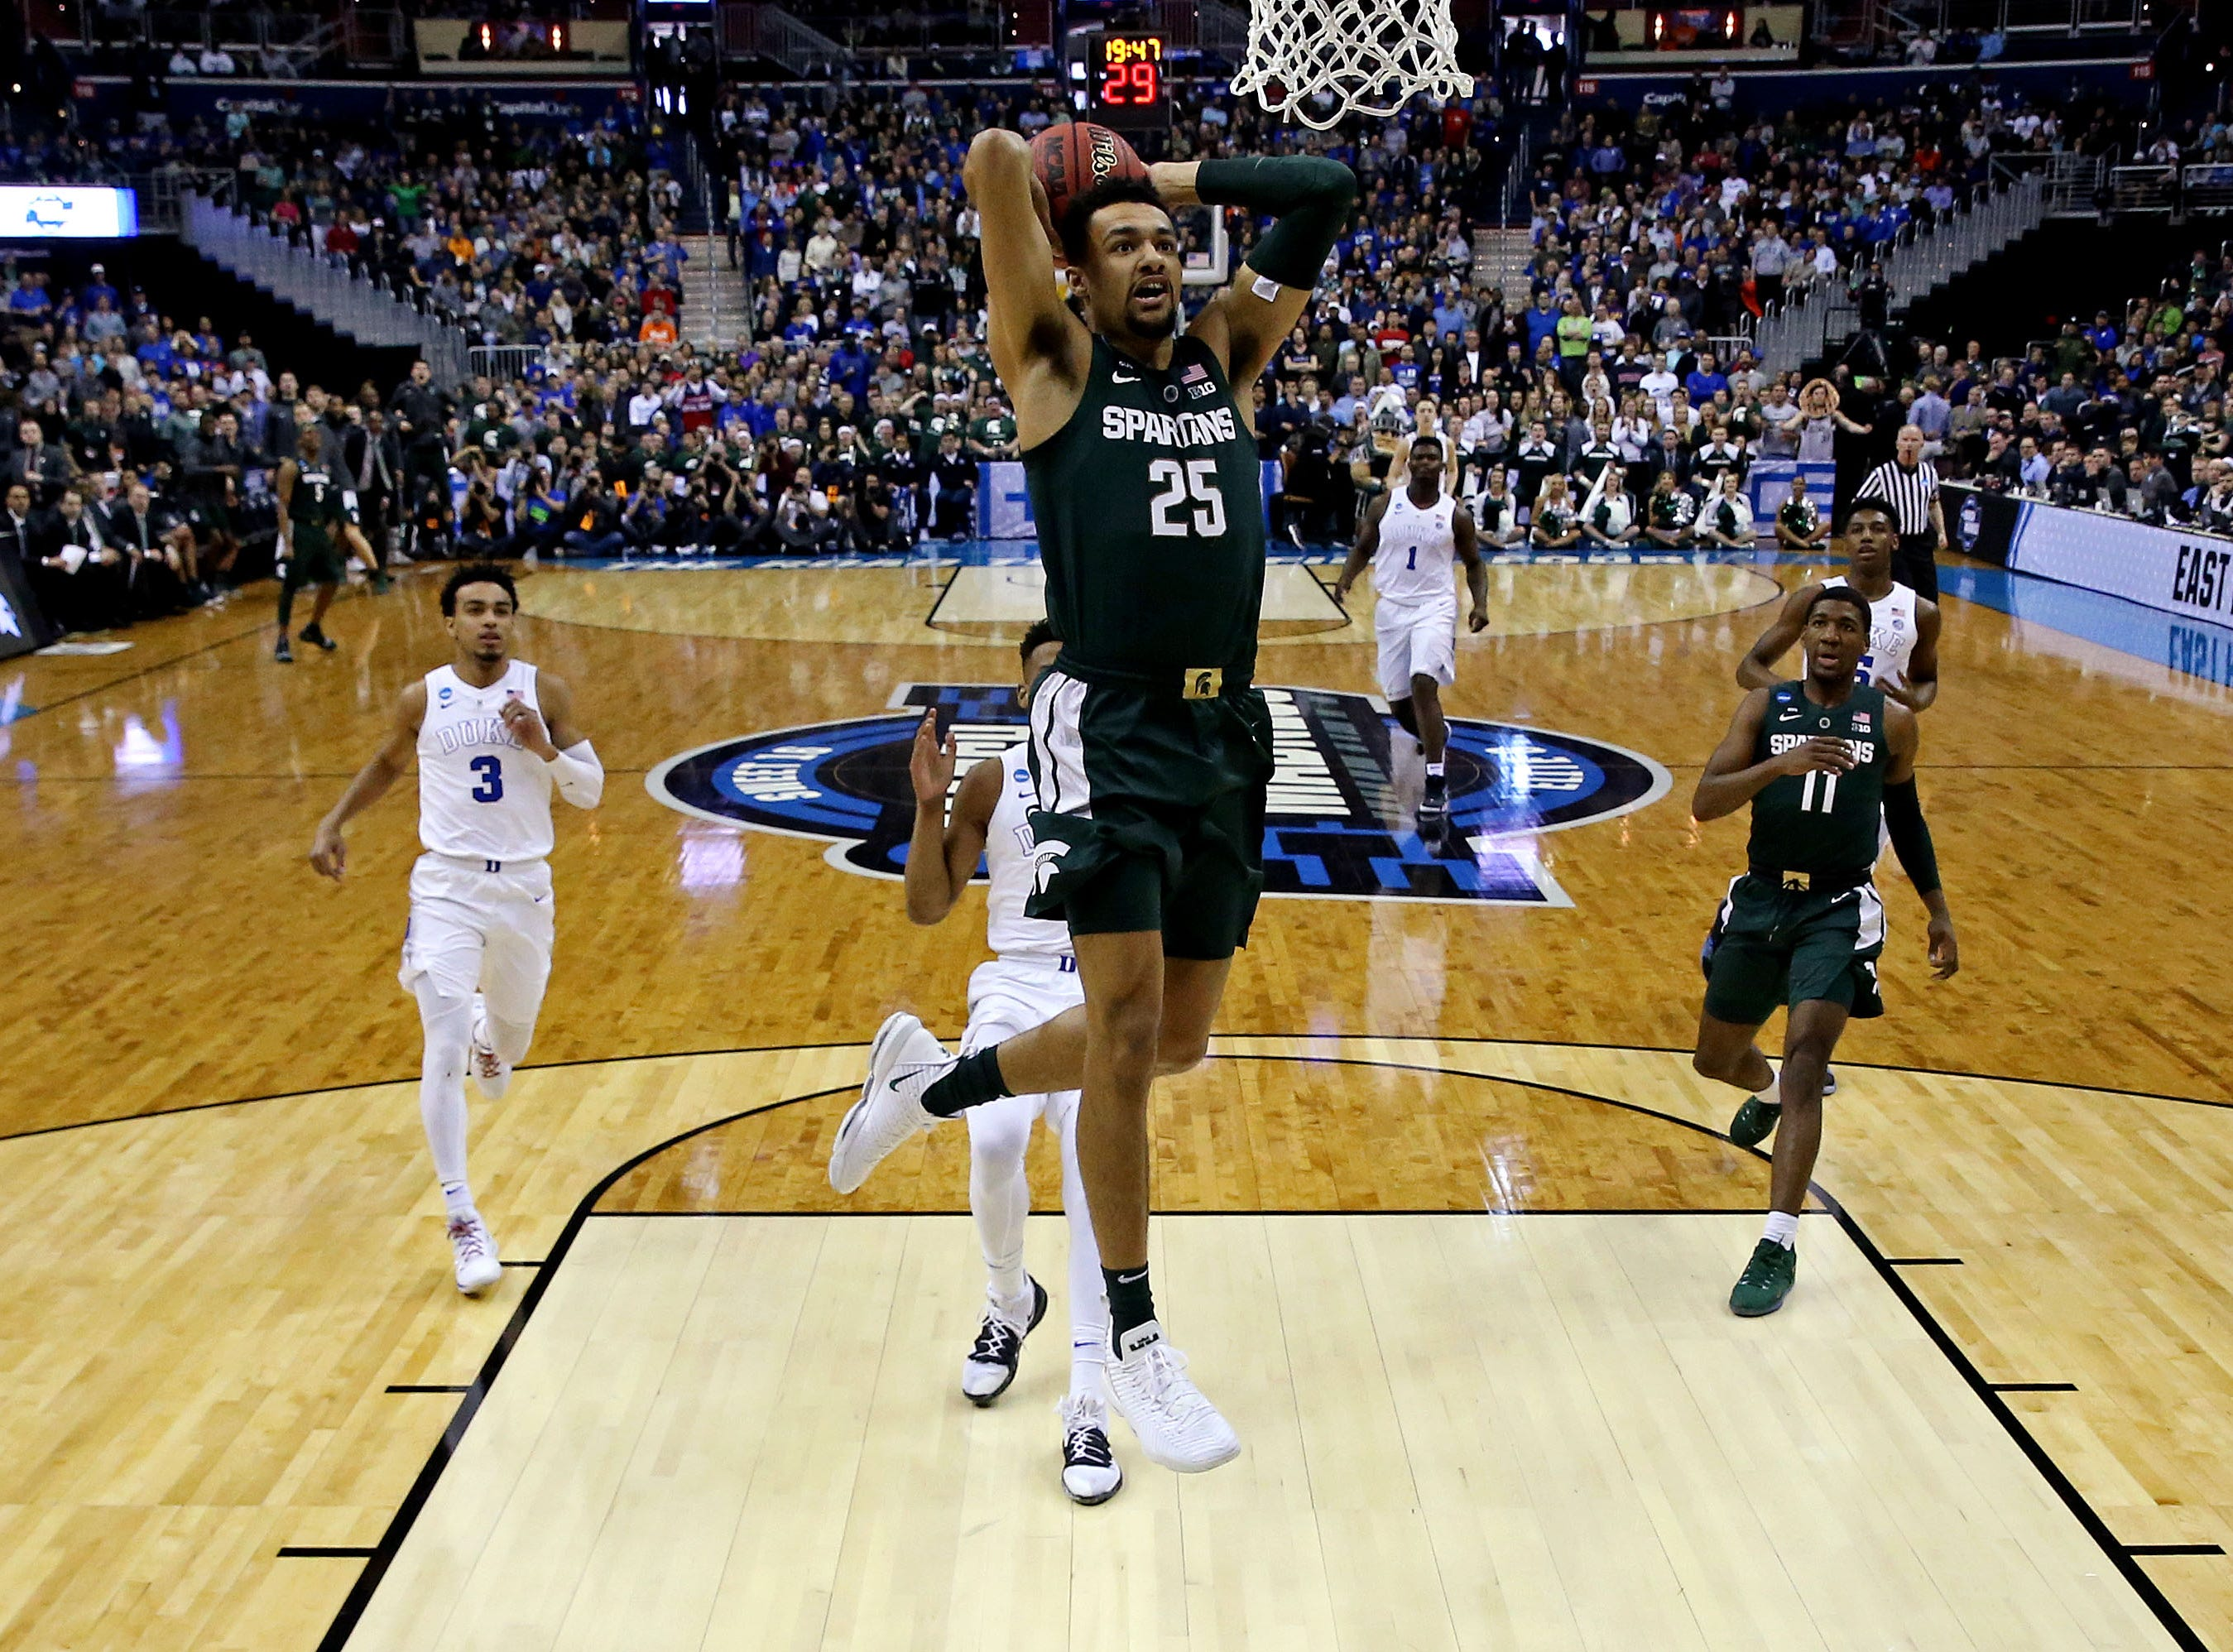 Mar 31, 2019; Washington, DC, USA; Michigan State Spartans forward Kenny Goins (25) dunks the ball during the first half against Duke Blue Devils forward Javin DeLaurier (12) in the championship game of the east regional of the 2019 NCAA Tournament at Capital One Arena. Mandatory Credit: Geoff Burke-USA TODAY Sports